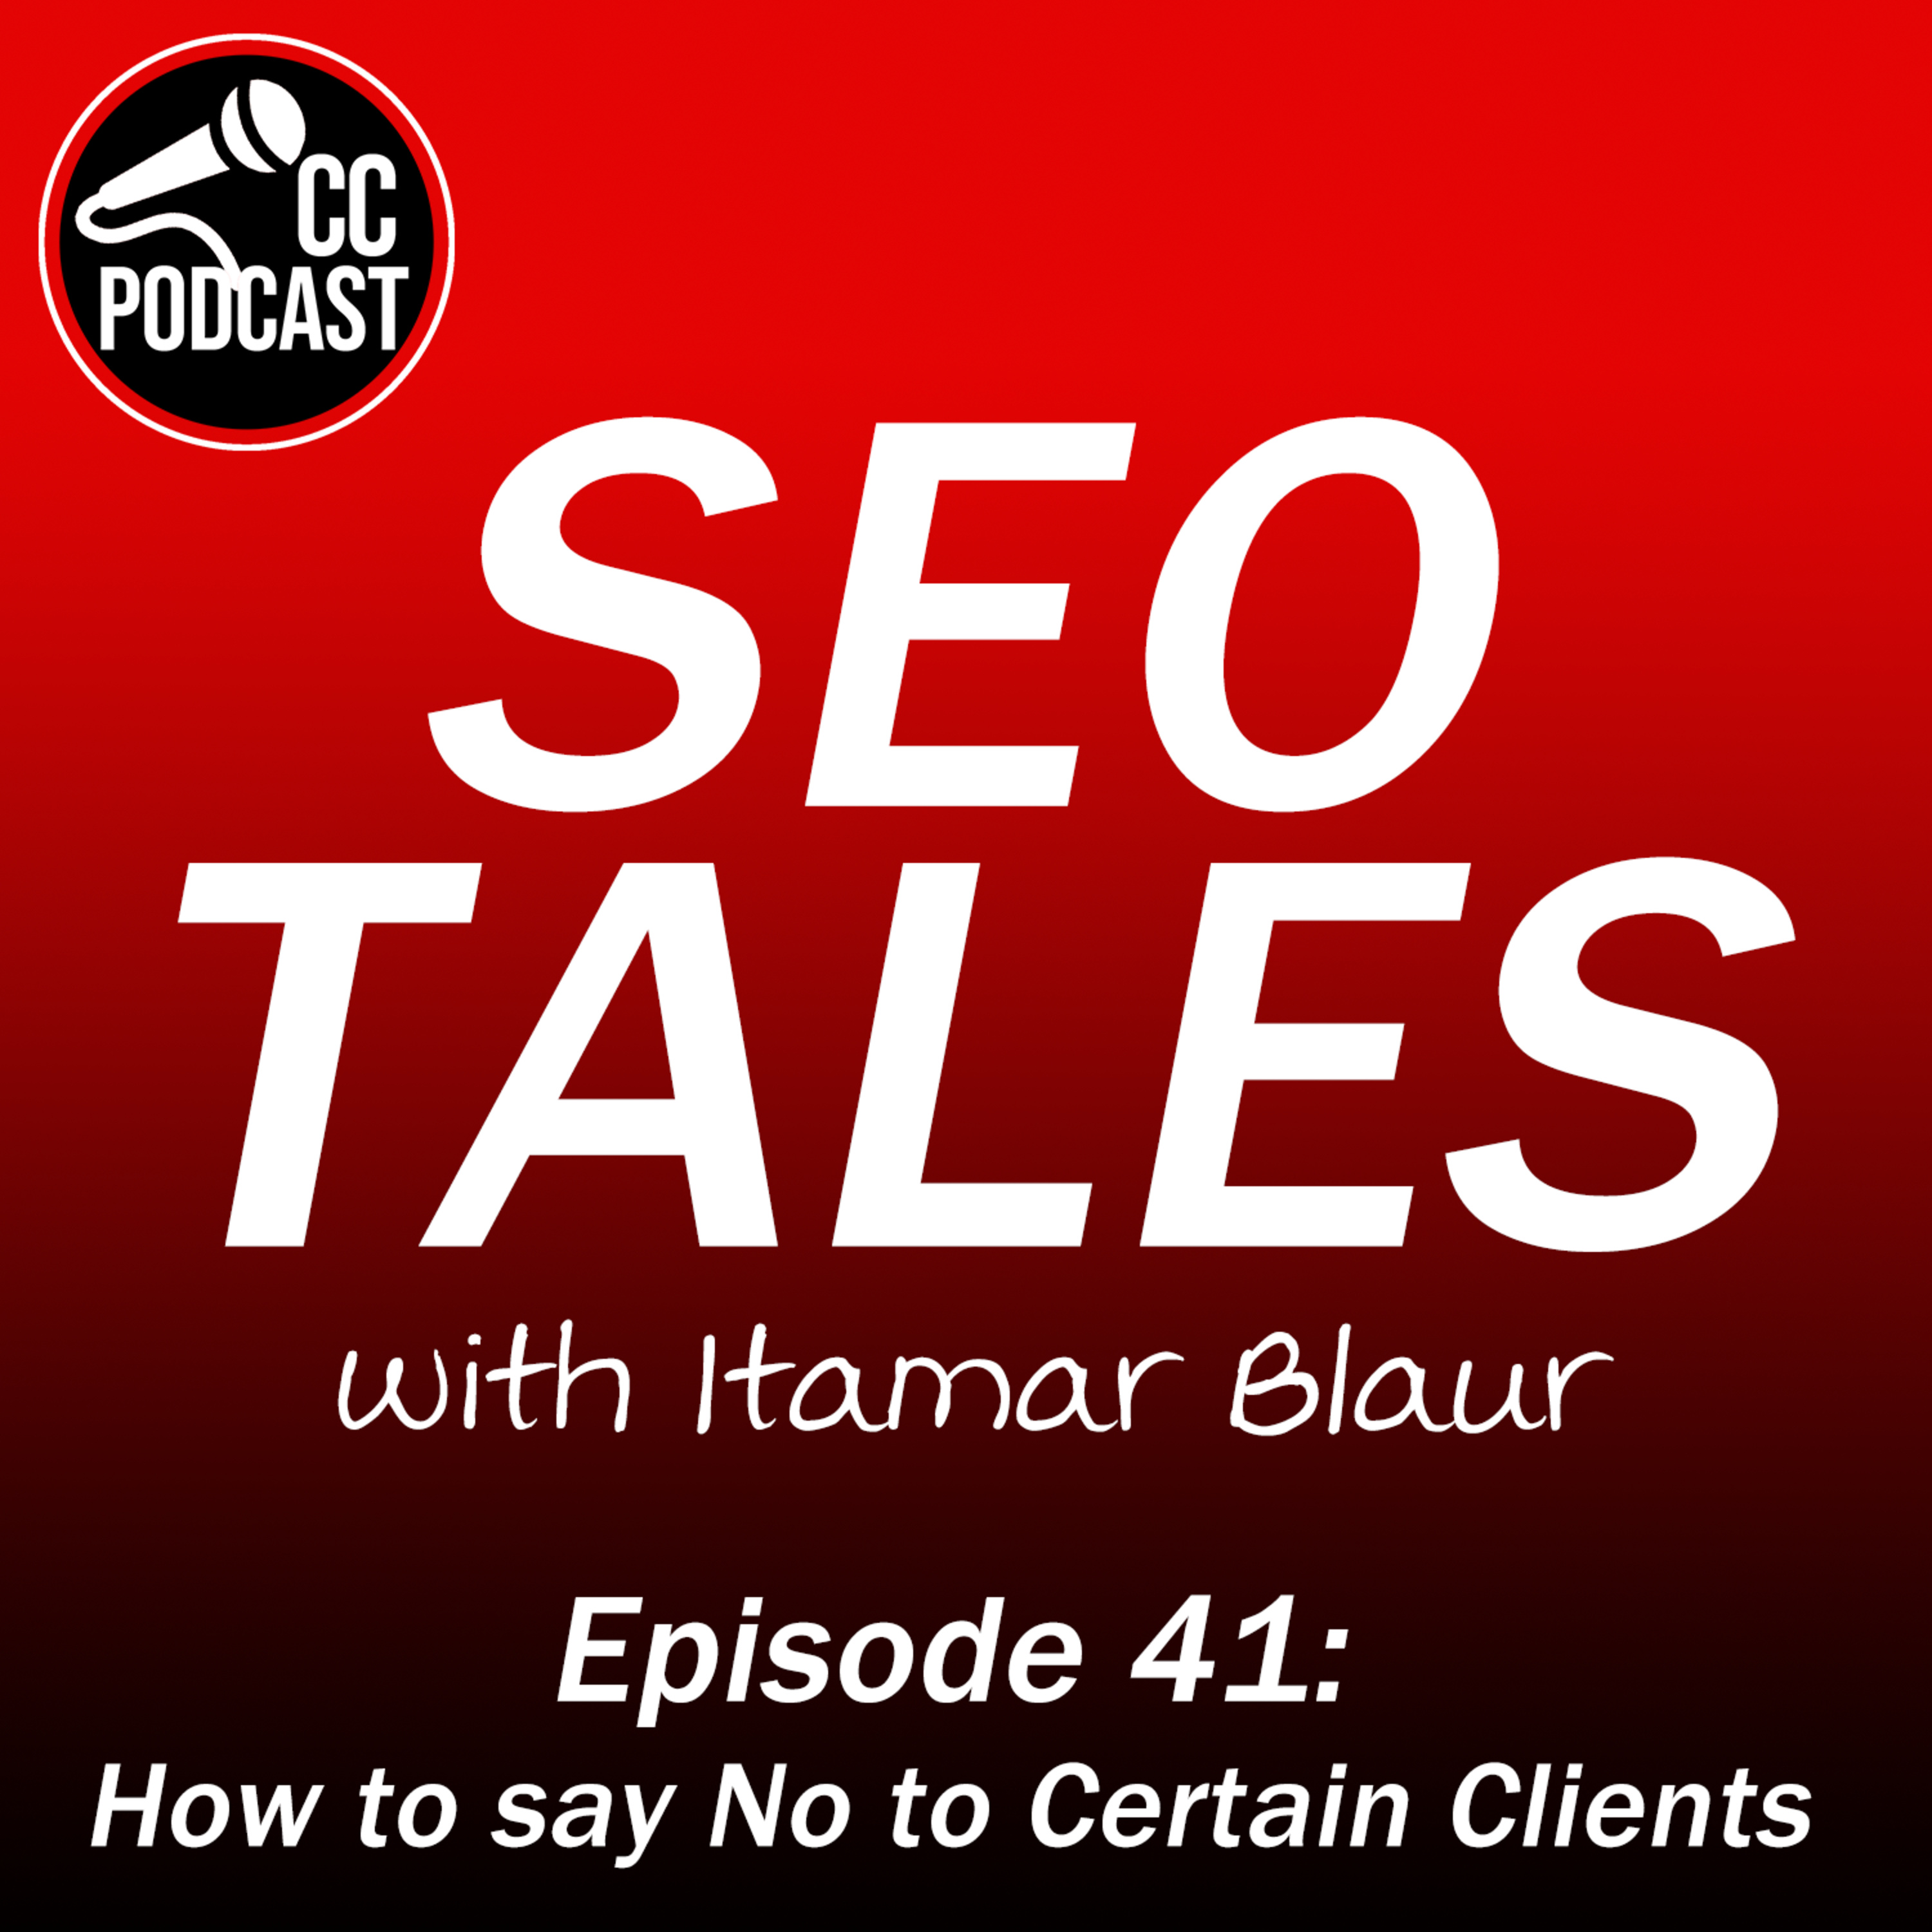 SEO Tales Episode 41 - How to say No to Certain Clients